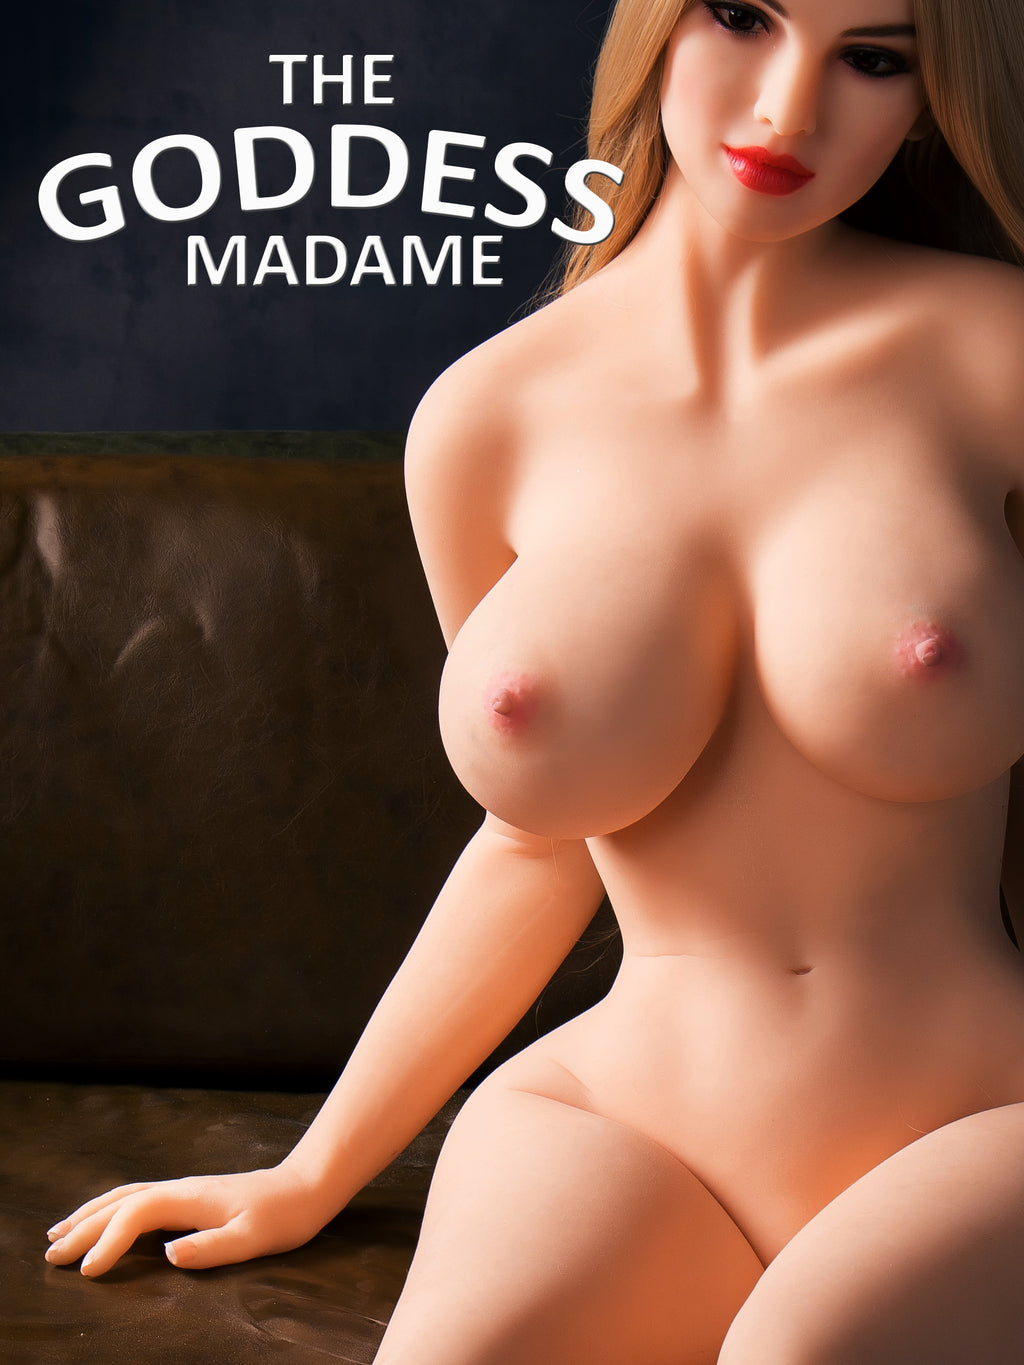 The Goddess Madame X-MAS OFFER